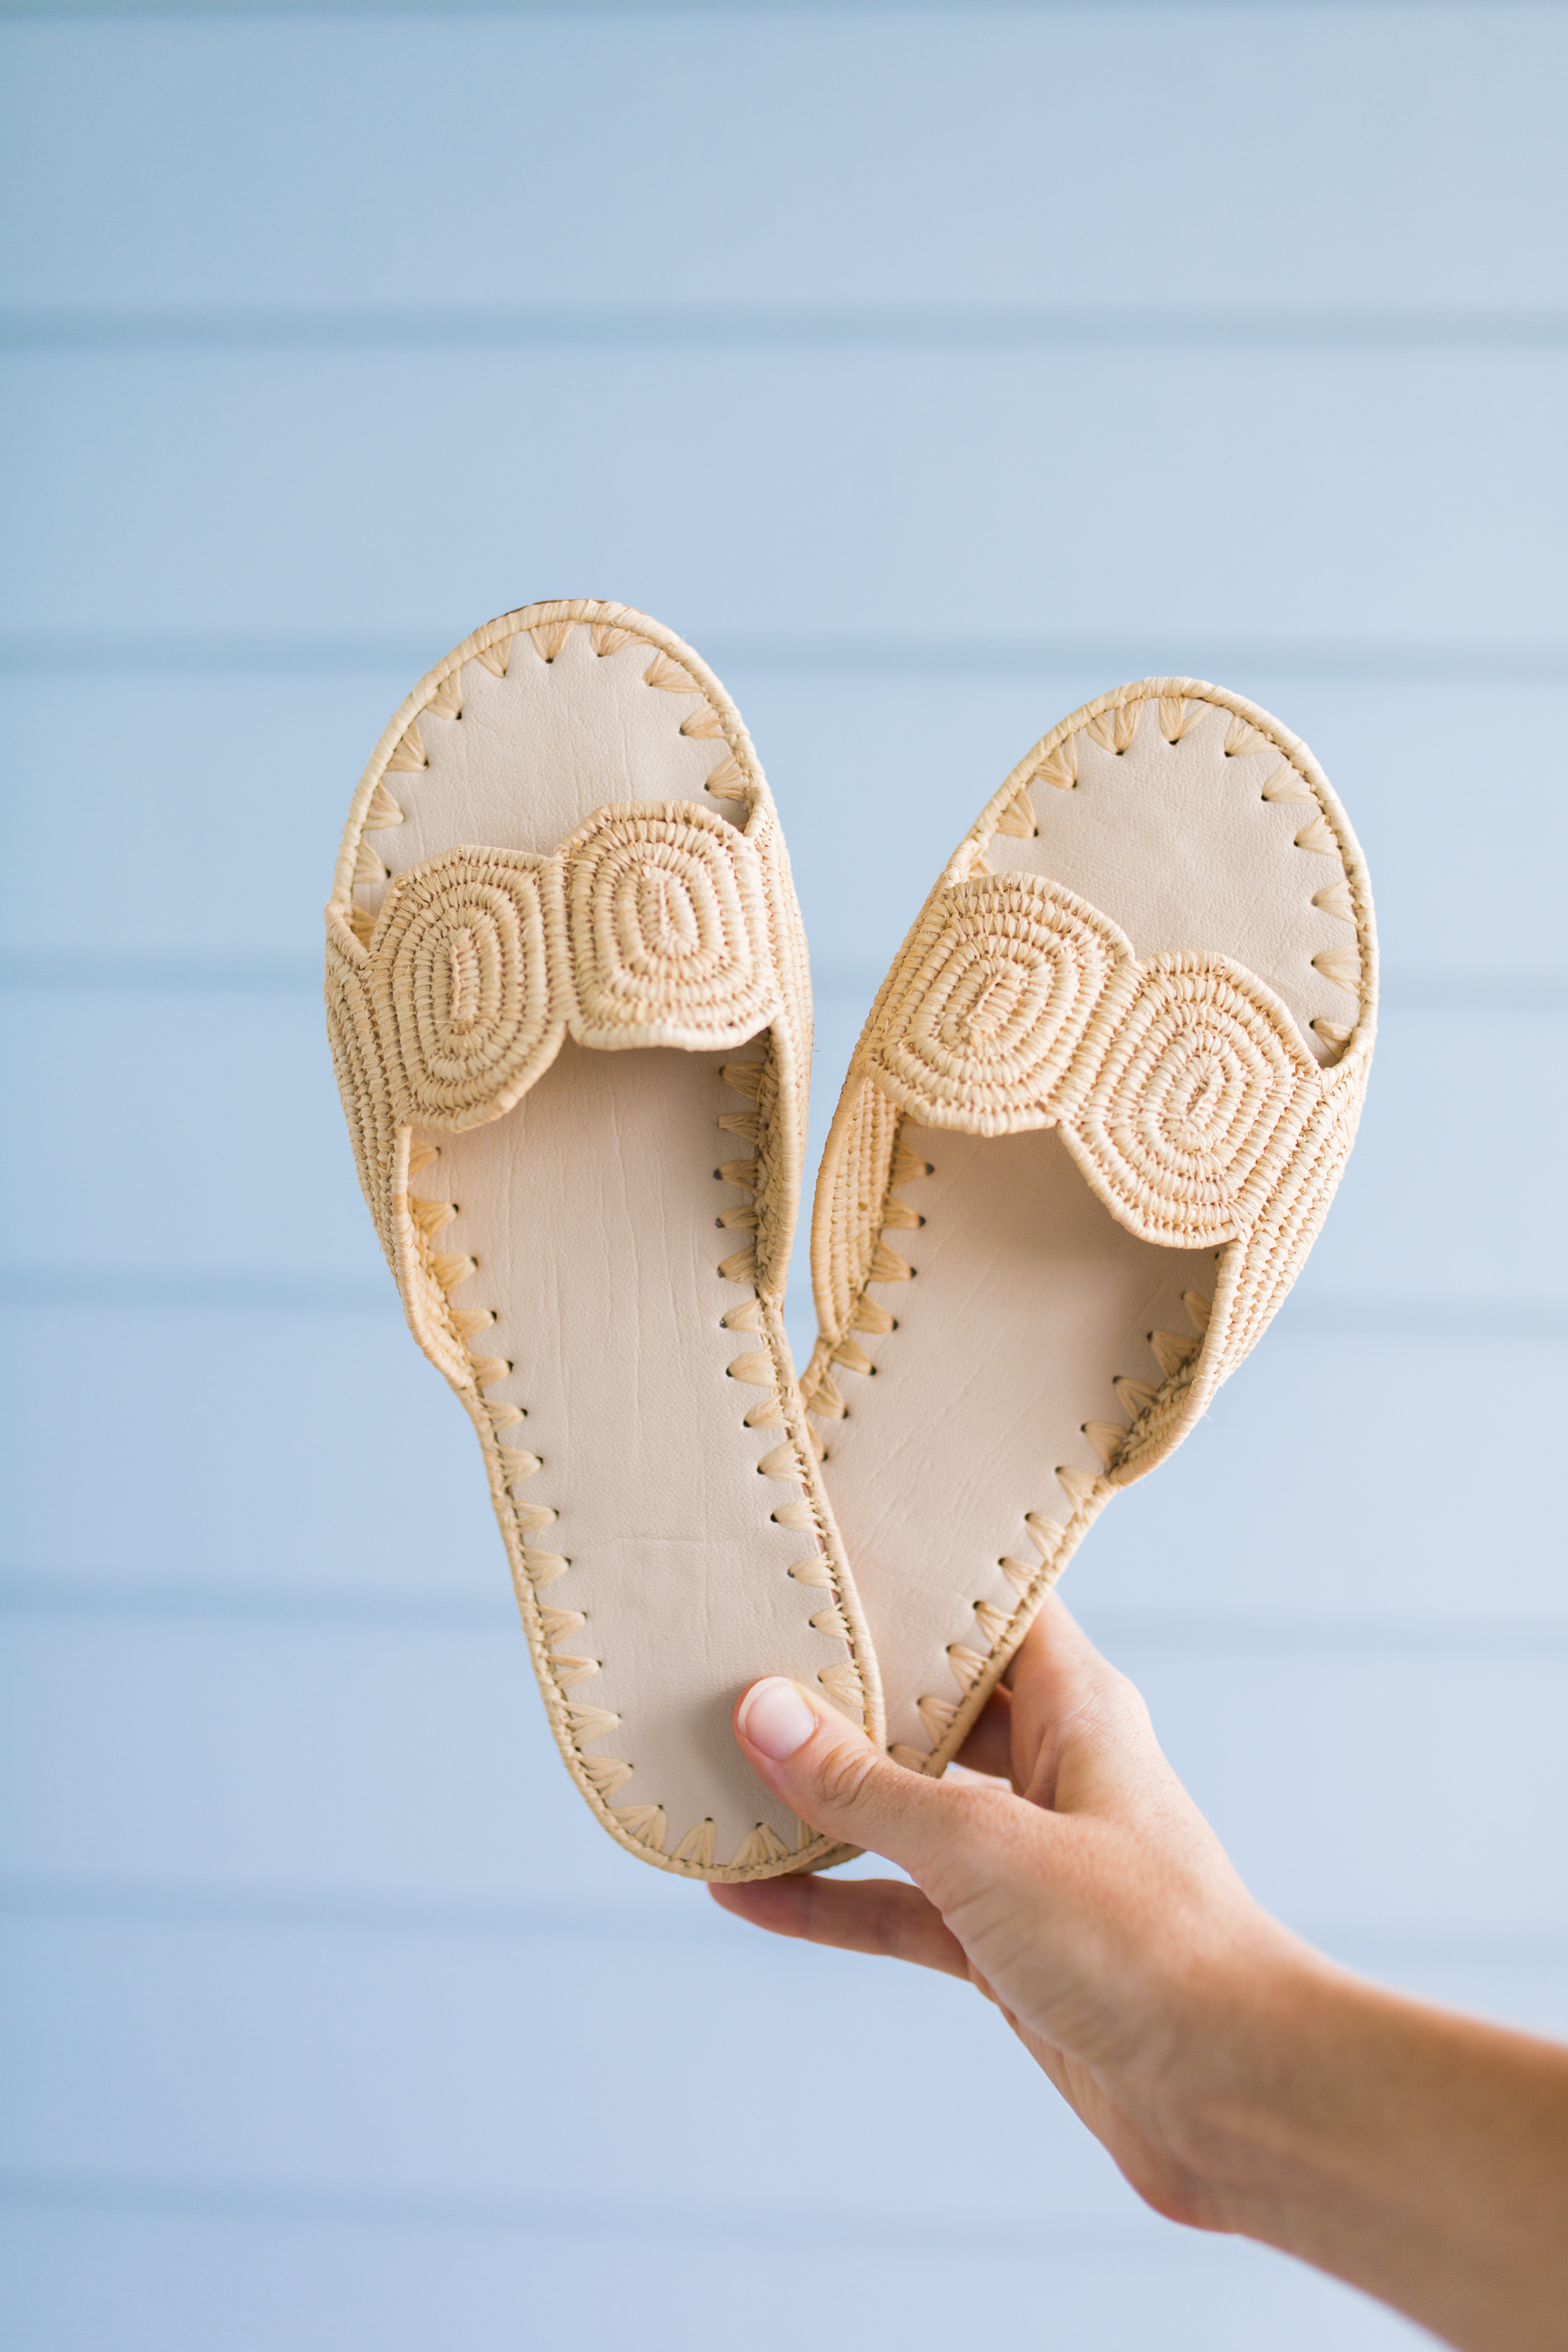 ETSY Raffia Sandals Made in Morocco / Summer Sandals #preppy #casualoutfit #summer #sandals